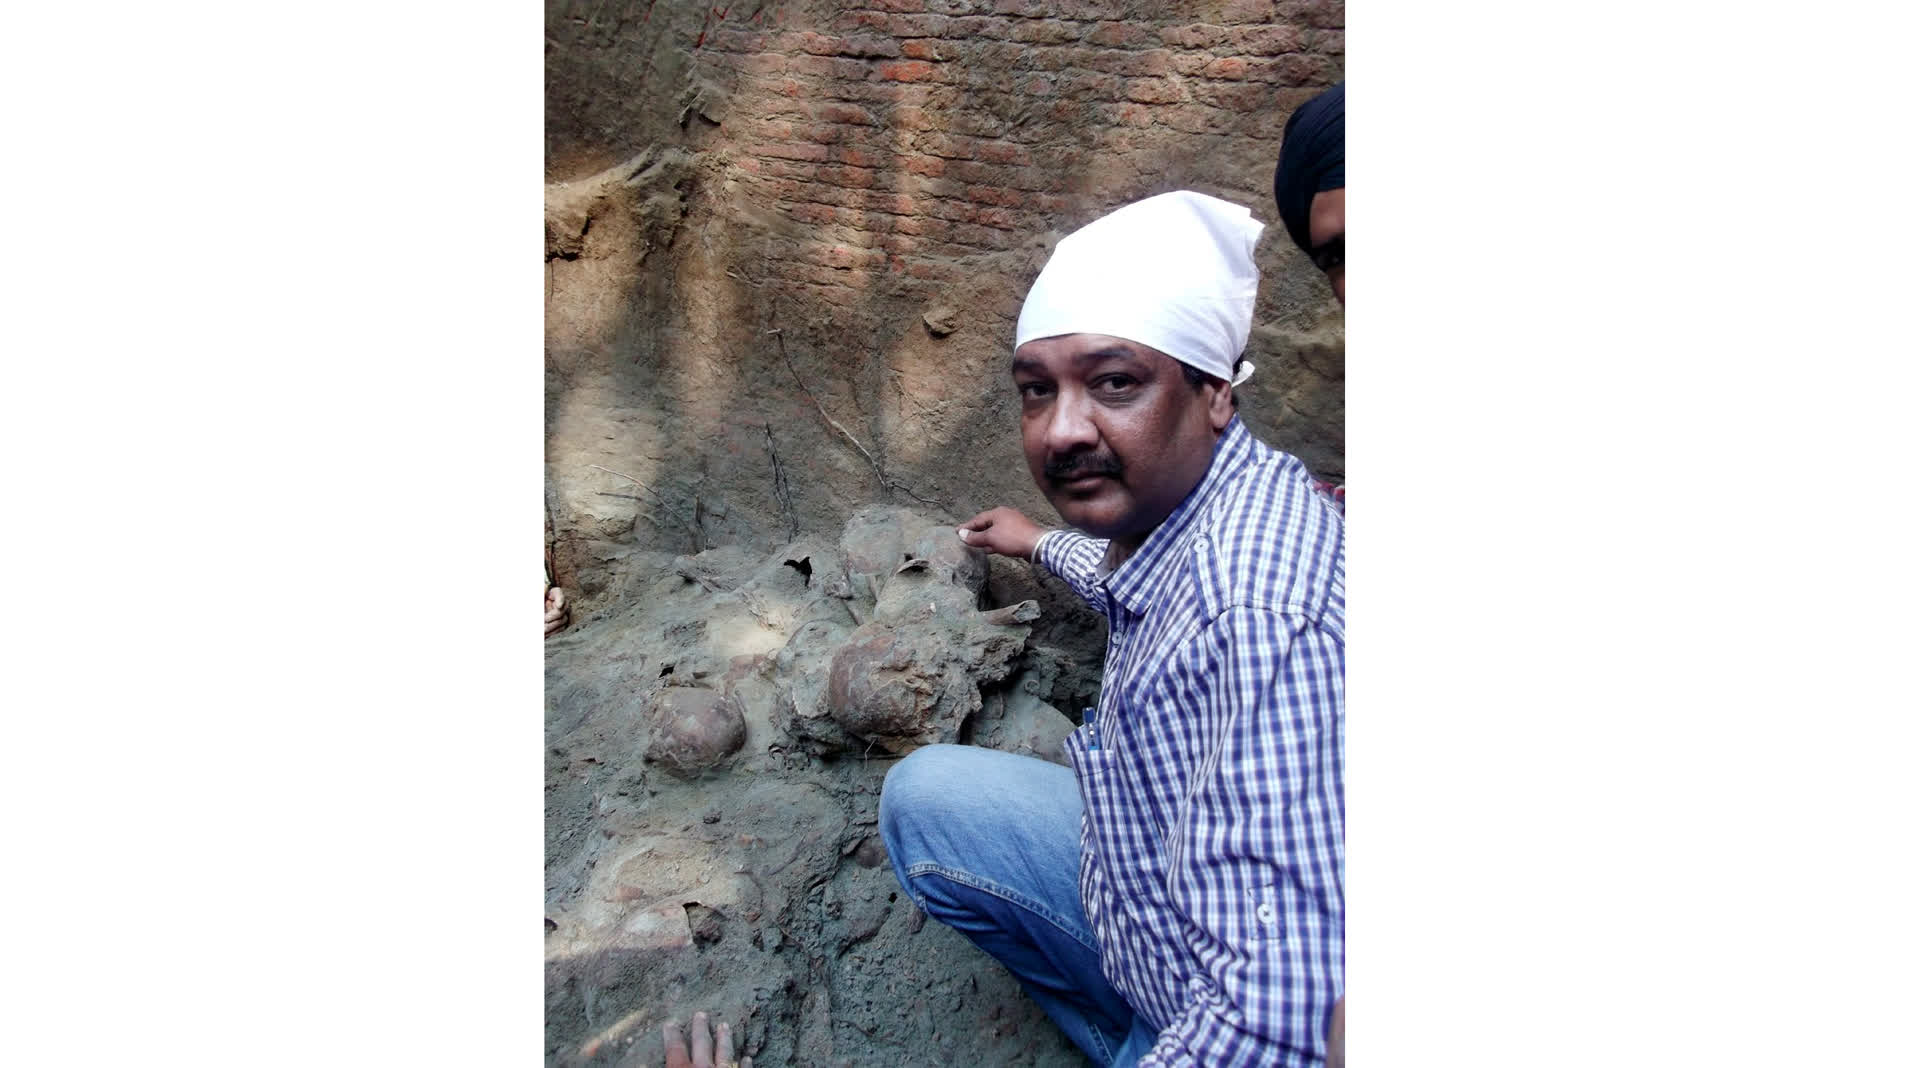 Historian Surinder Kochhar with the findings from the well